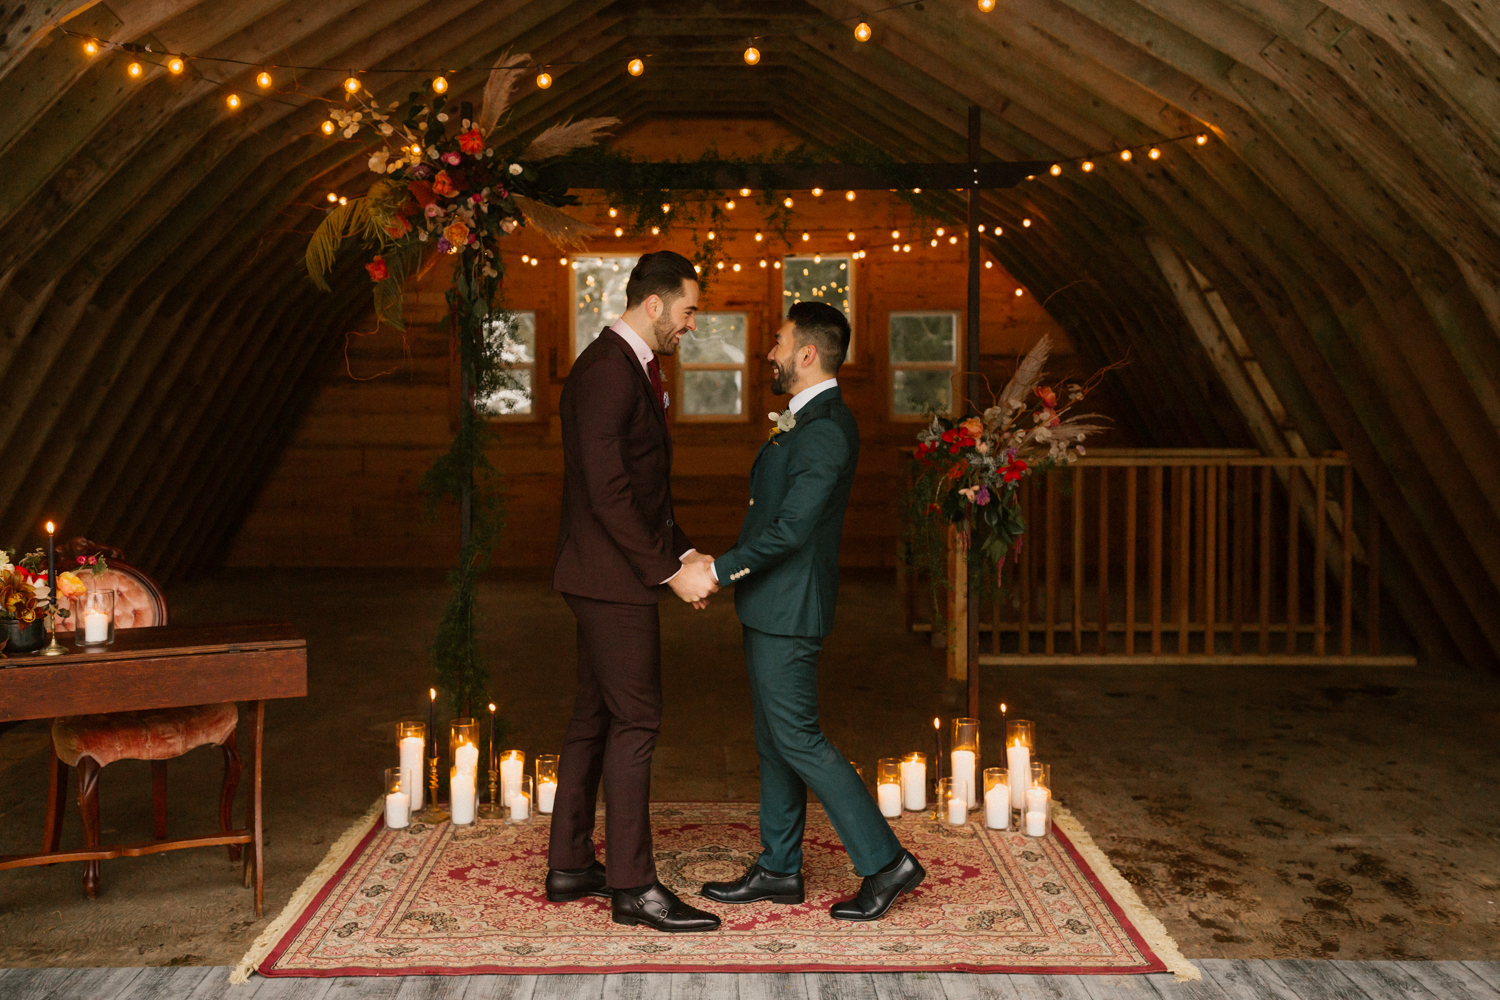 Boho elopement ceremony by Abigail Eveline photography and fernwood elopement collective